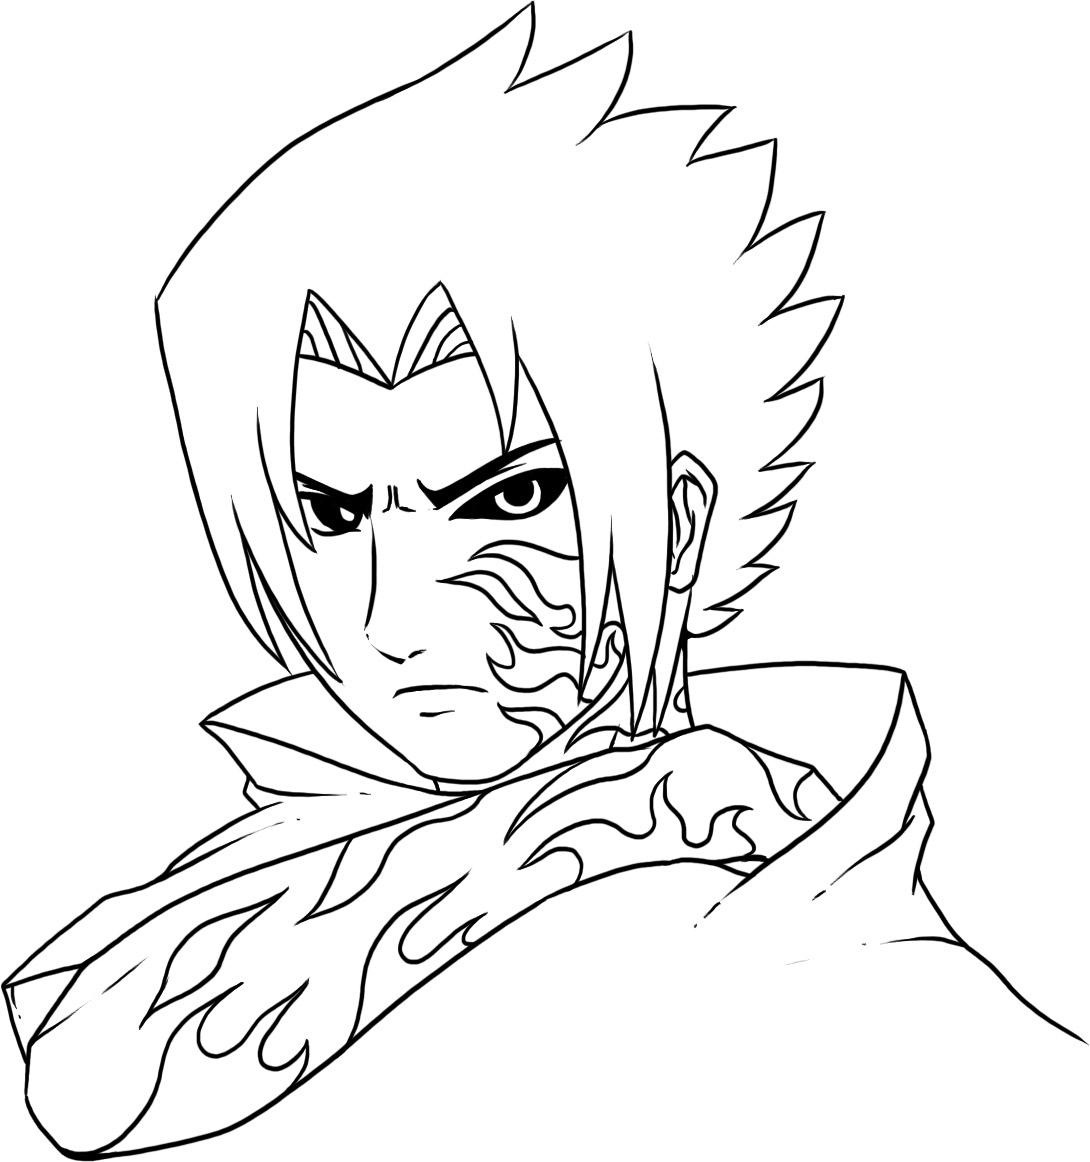 Free printable naruto coloring pages for kids for Anime character coloring pages